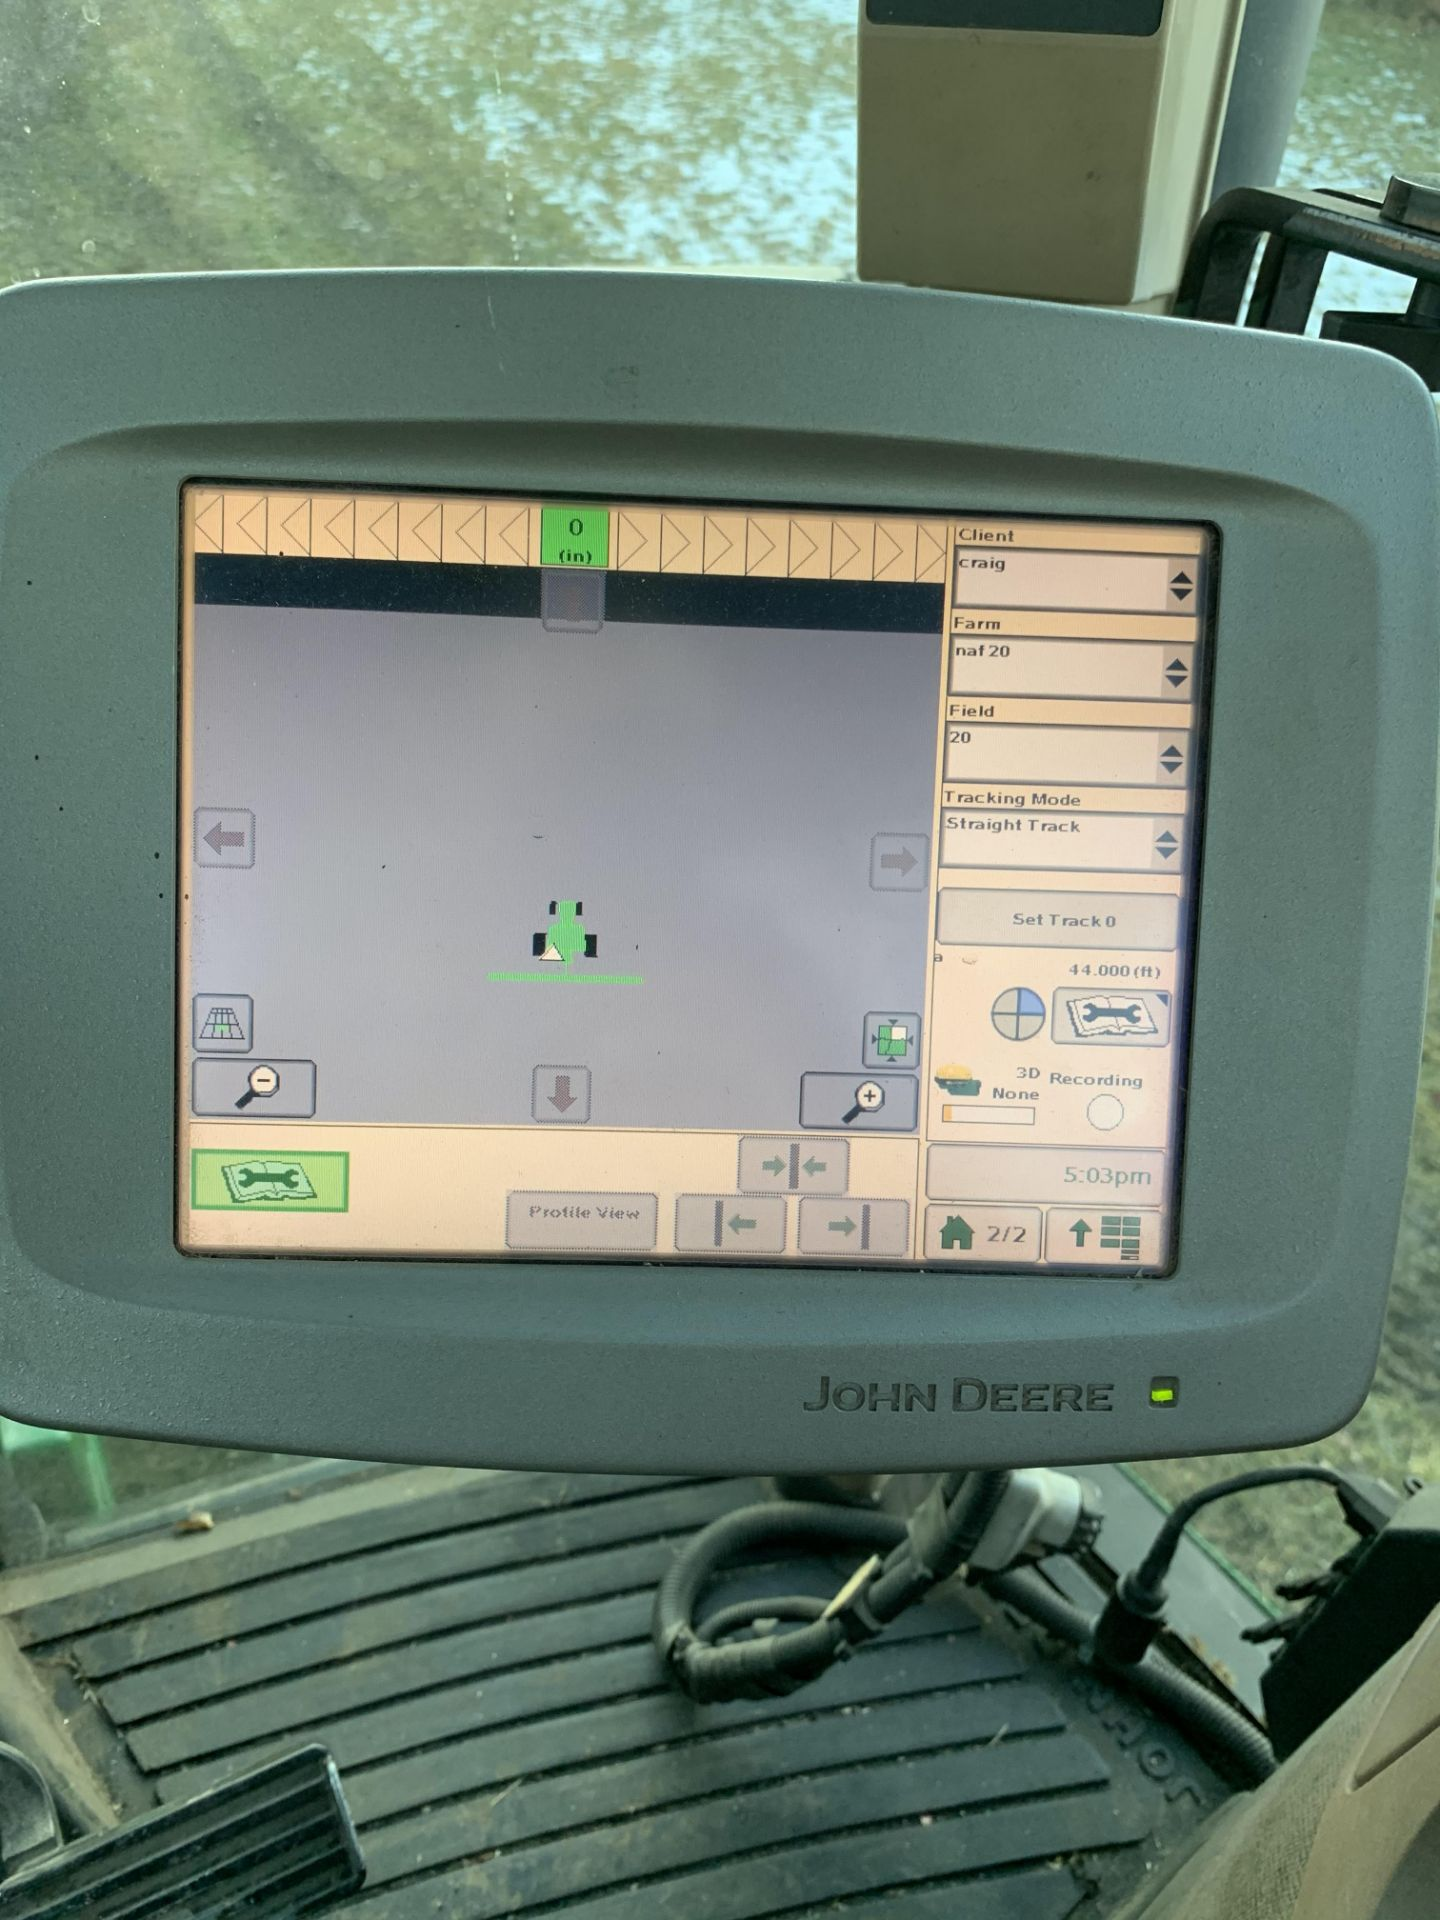 John Deere 2600 Monitor Console, Serial #PCGU26H211463. Auto Tract Activation - Image 4 of 6